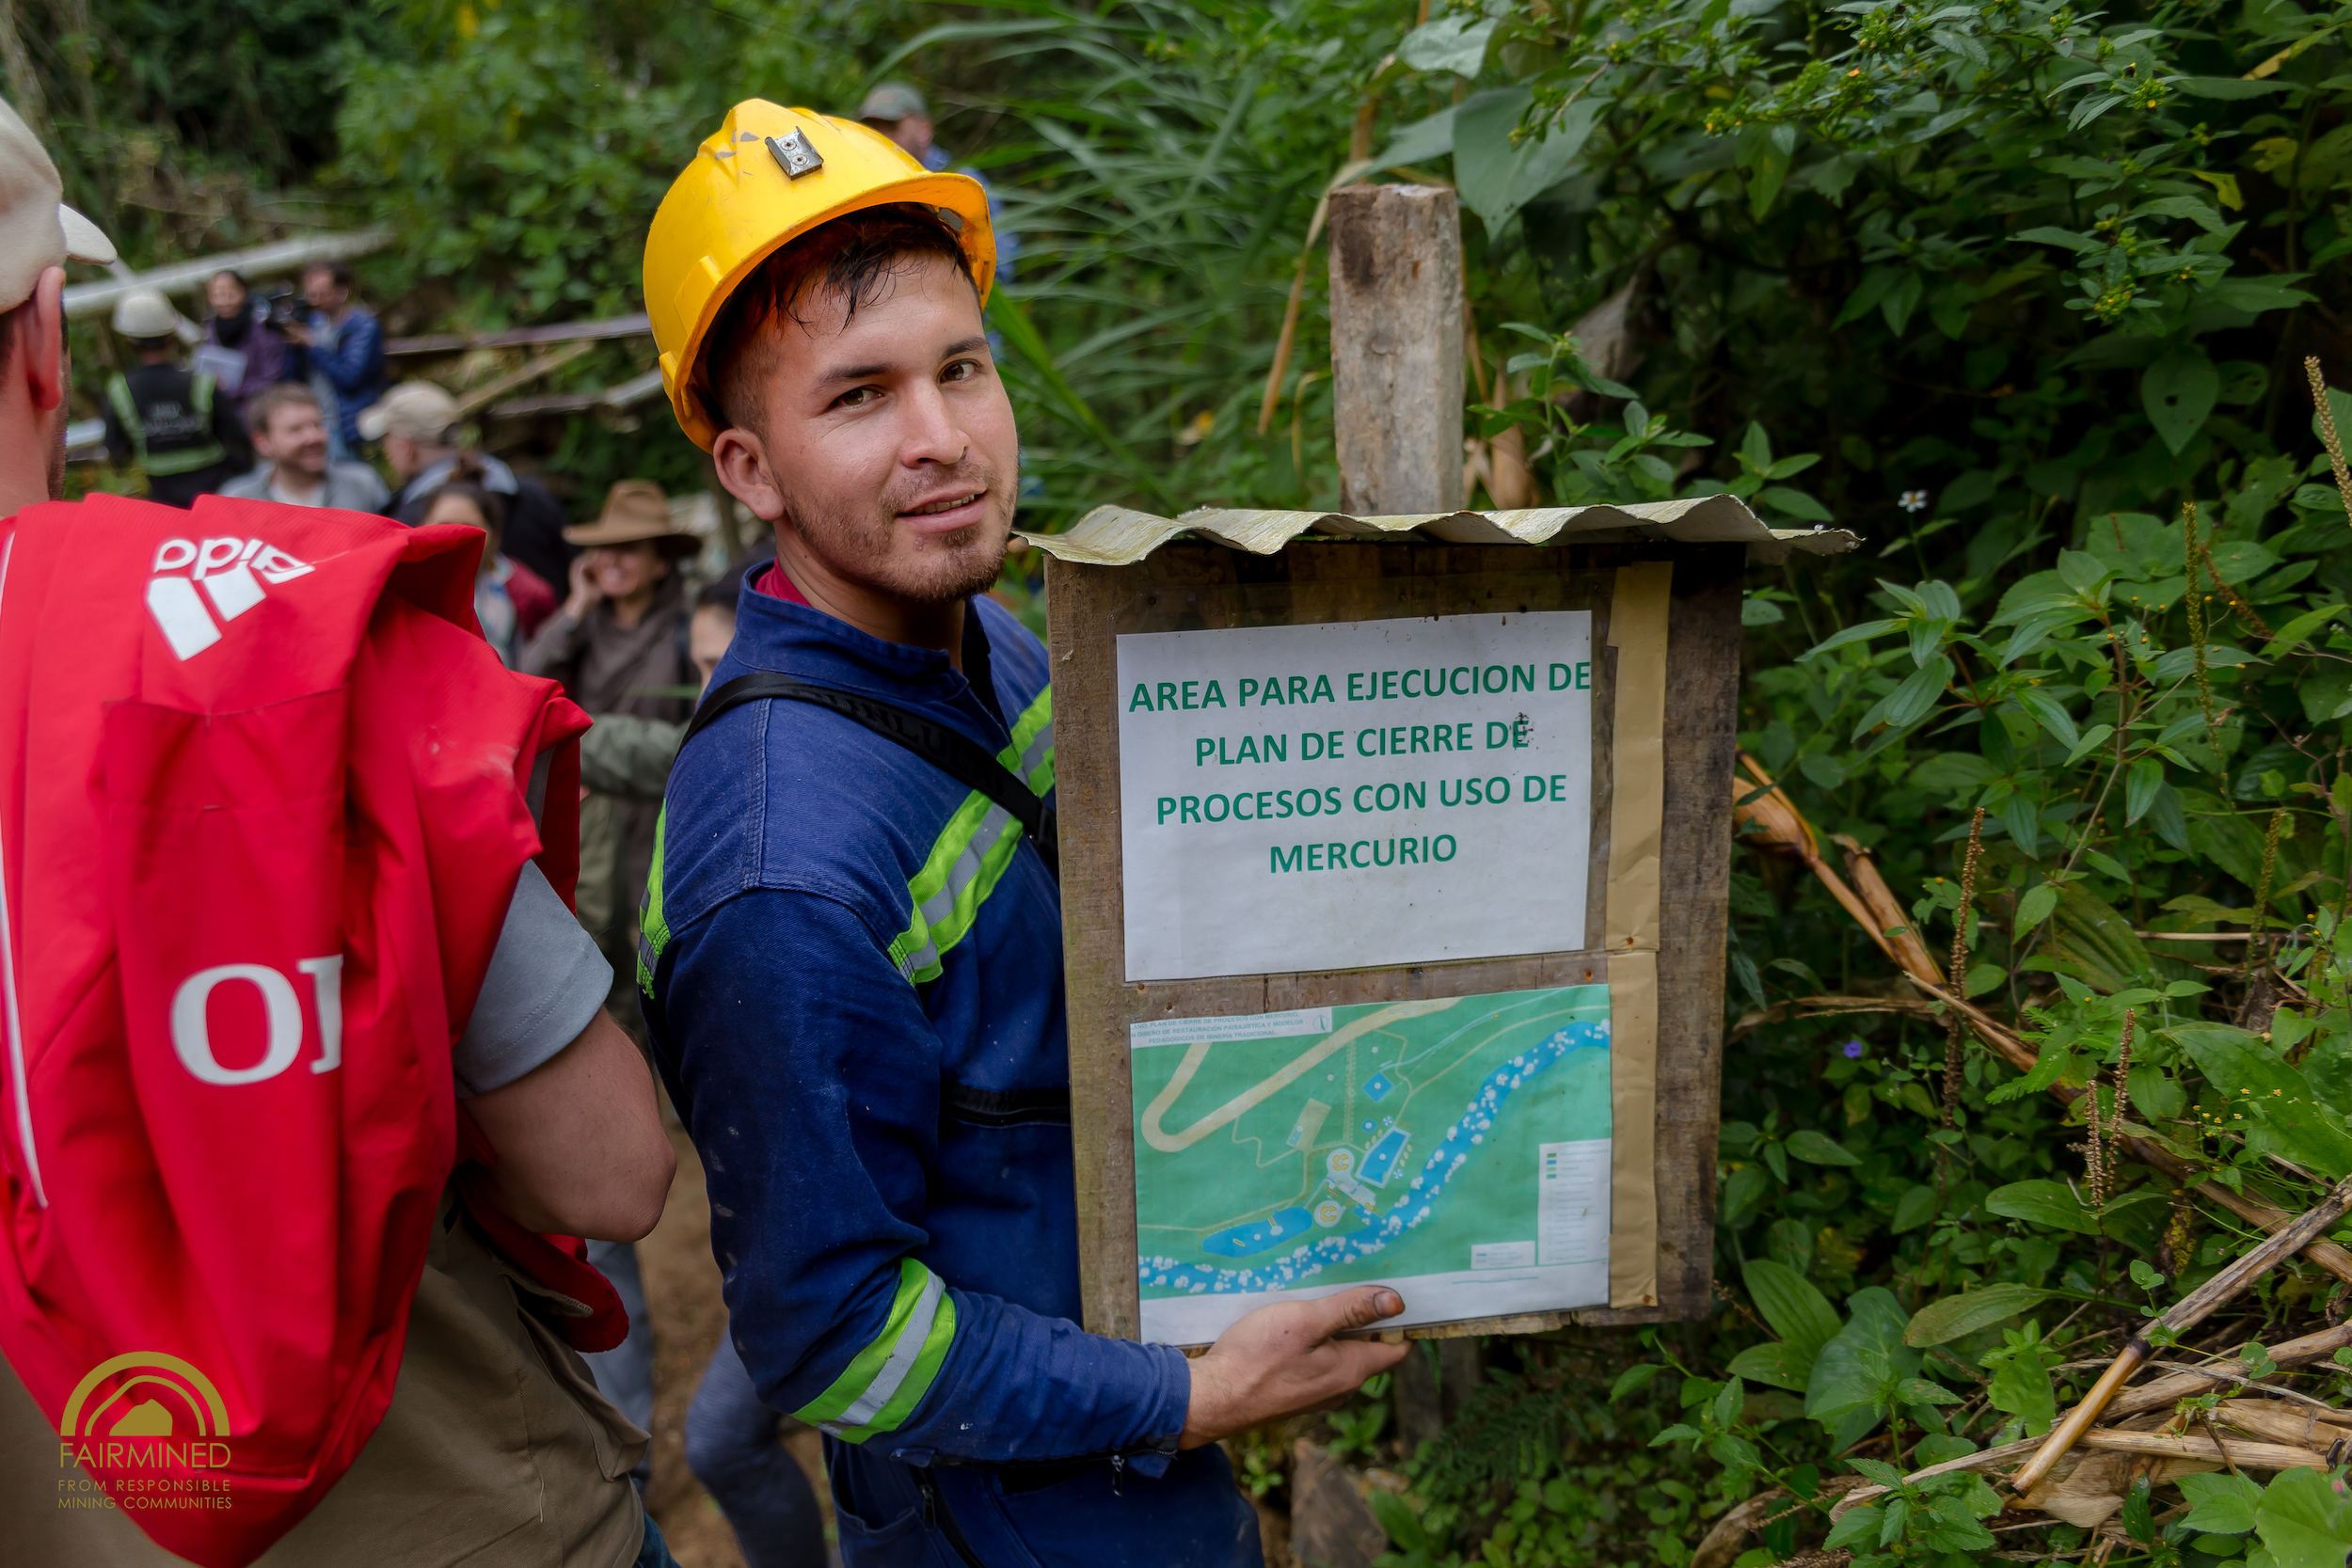 alexandre, a Miner from GUalCONDA, shows a sign Highlighting the plan for how the mercury contaminated site will look after restoration. IMAGE: Fairmined